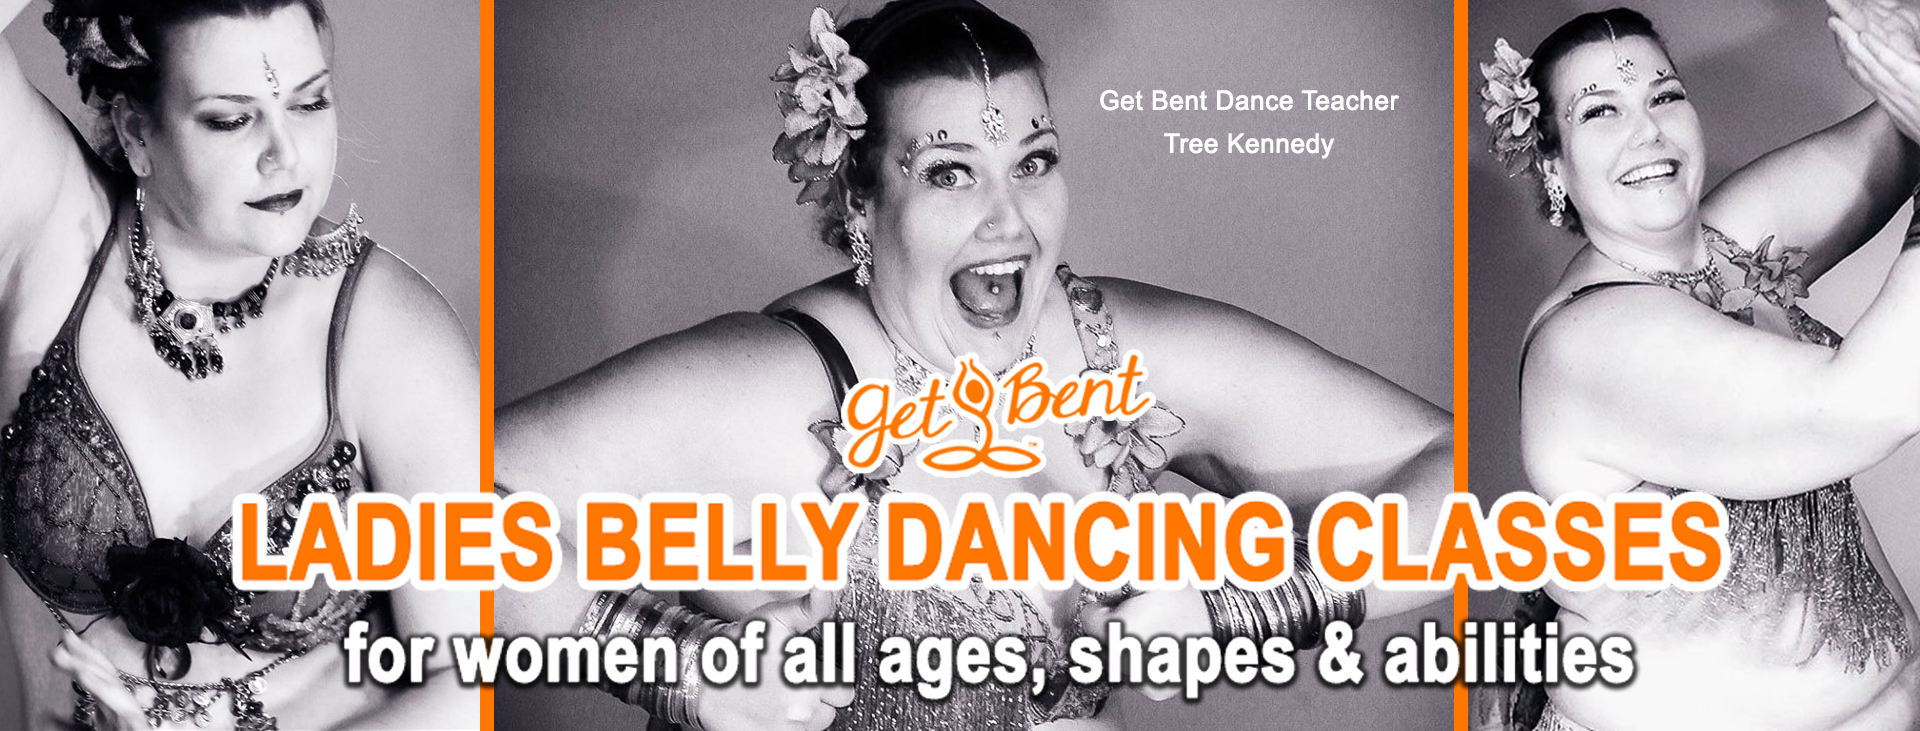 Get Bent Belly Dancing Spring Showcase - Penticton, BC